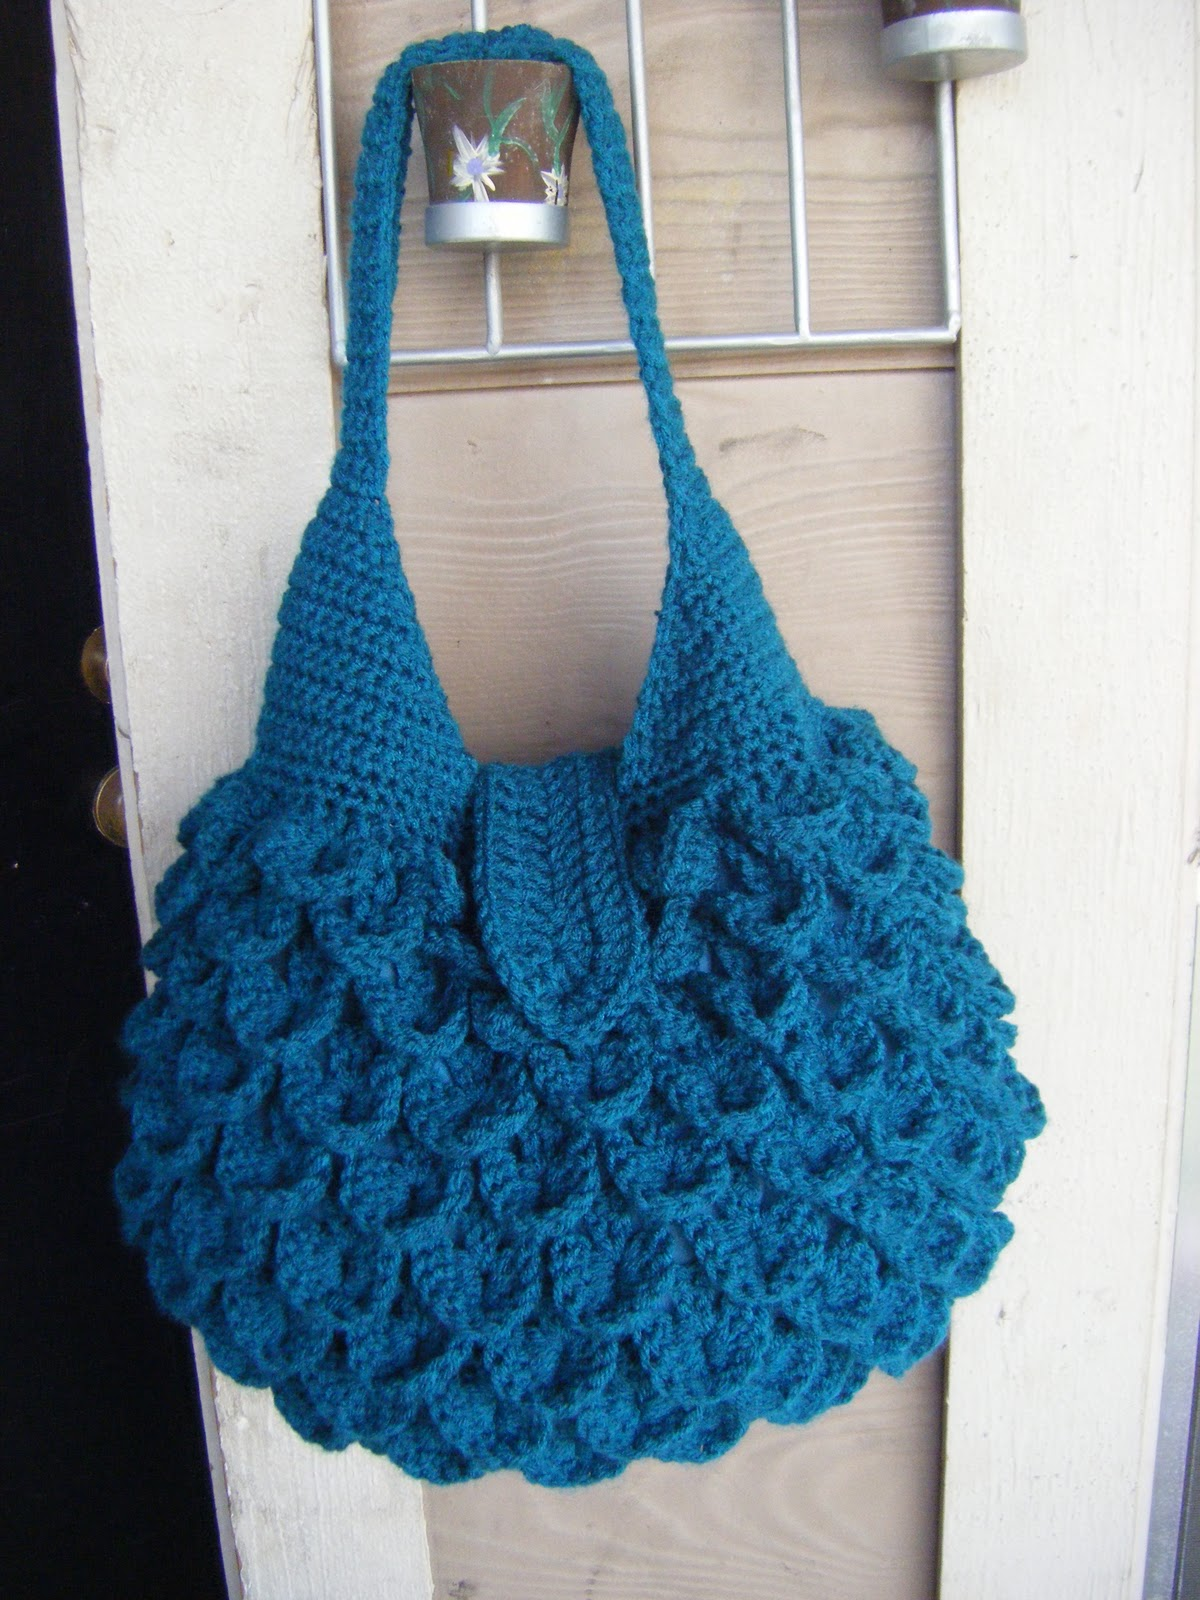 Free Crochet Pattern Bag : FREE CROCHET BAG HOLDER PATTERN - Crochet and Knitting Patterns